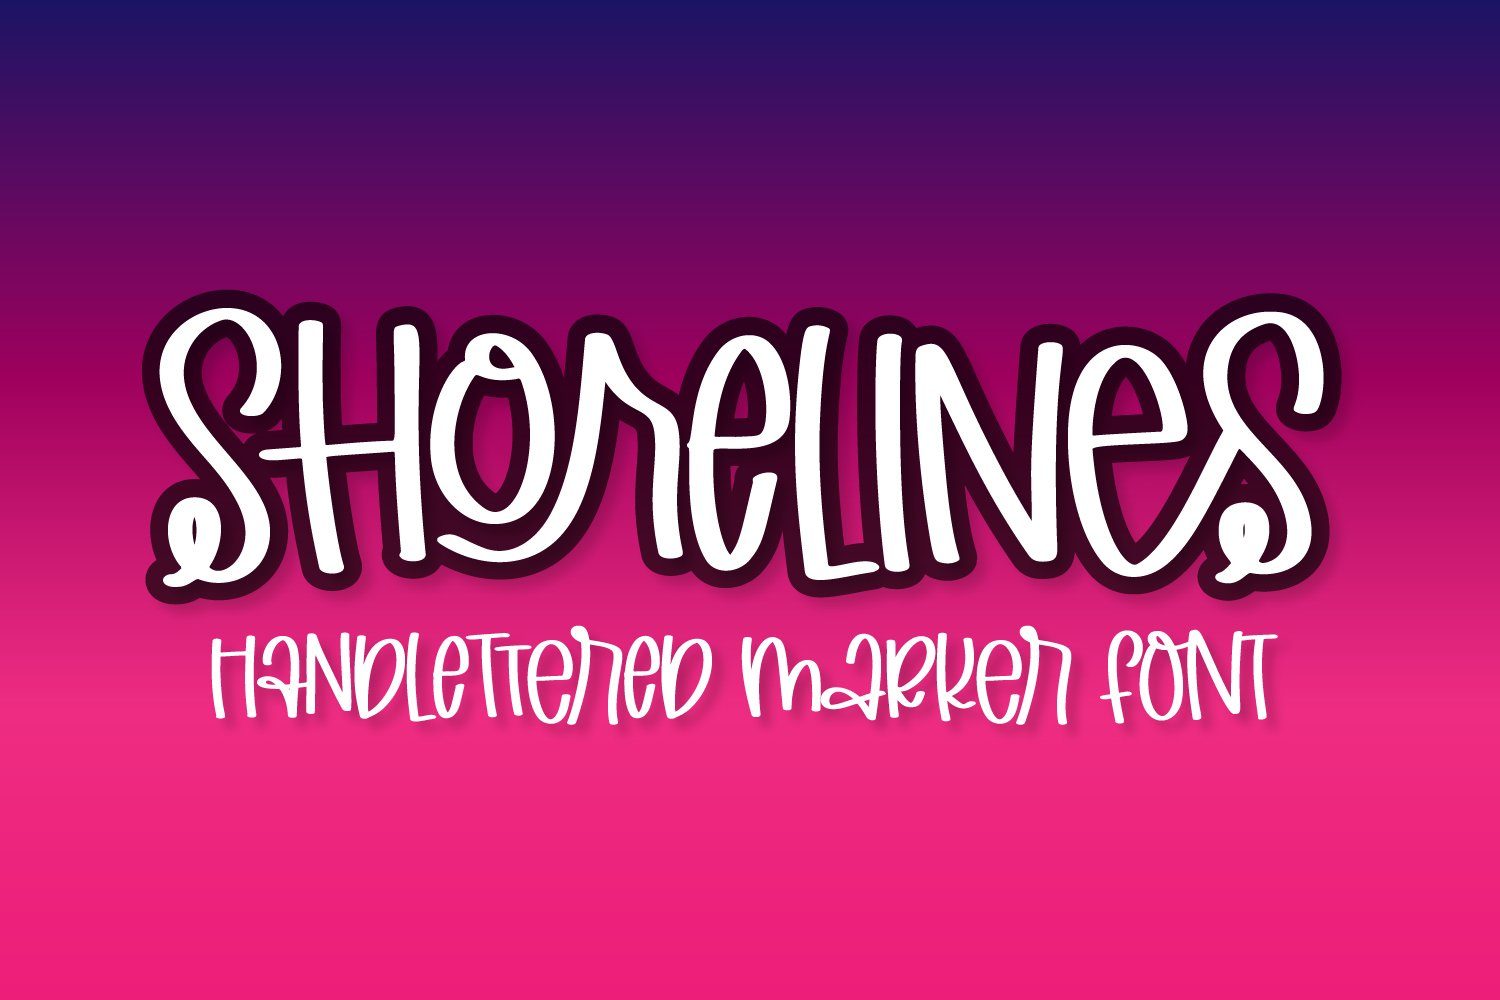 Shorelines - A Quirky Hand Writing Font example image 1